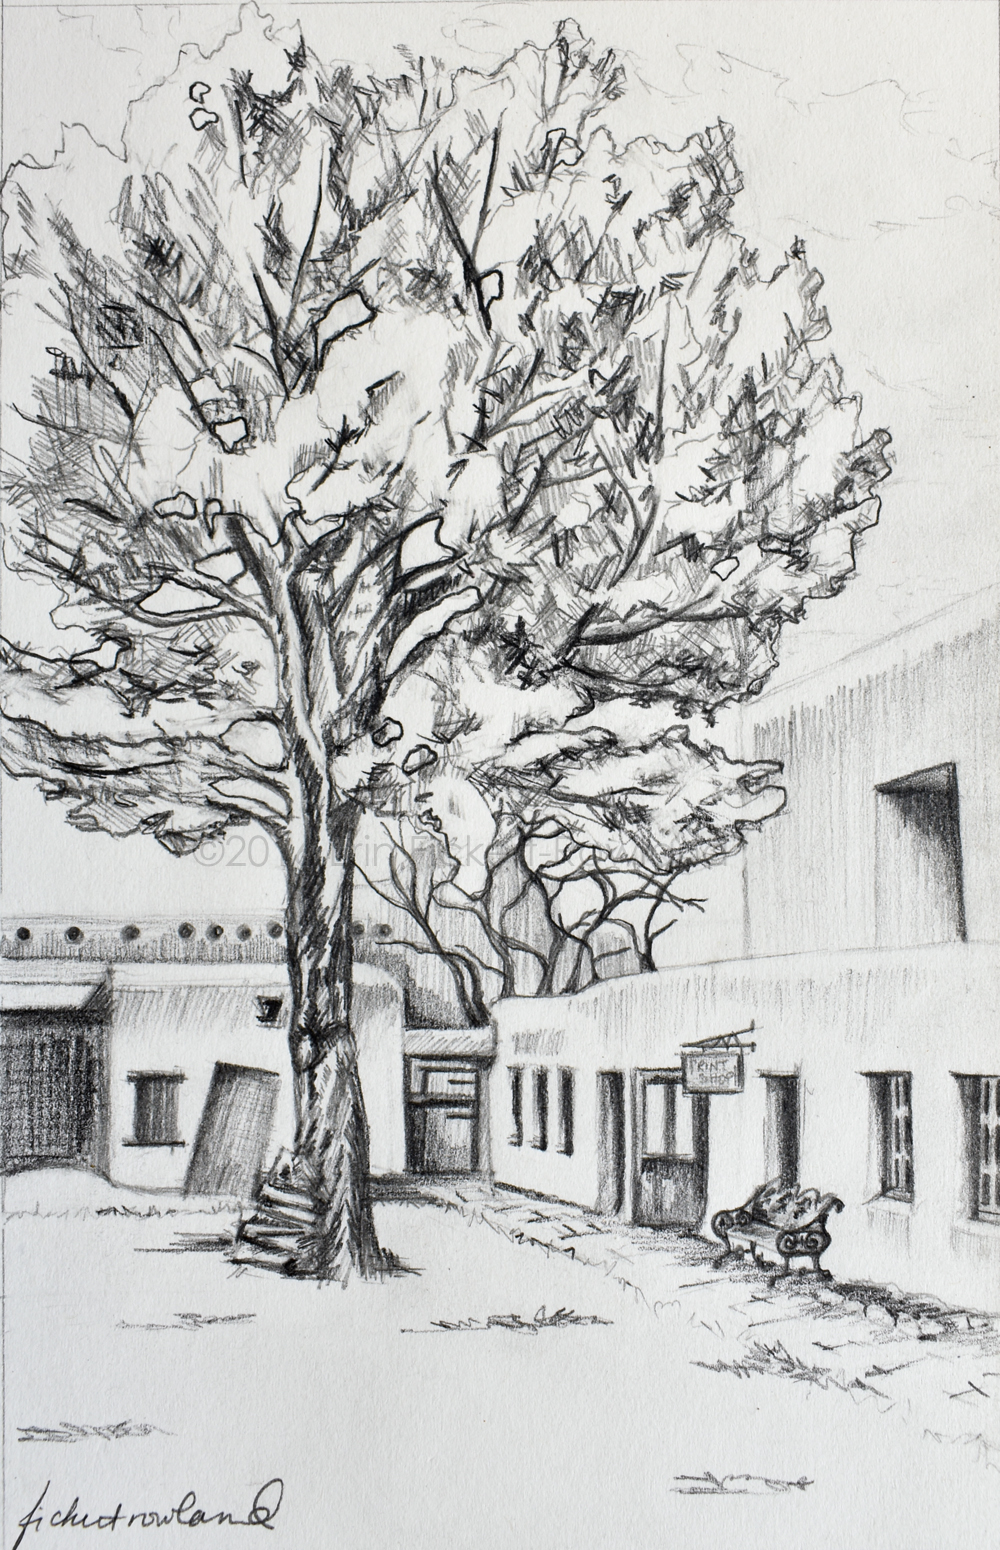 """A Tree Grows in the Courtyard, Santa Fe""  6 in x 9 in   Matted to 8 1/2in x11in"